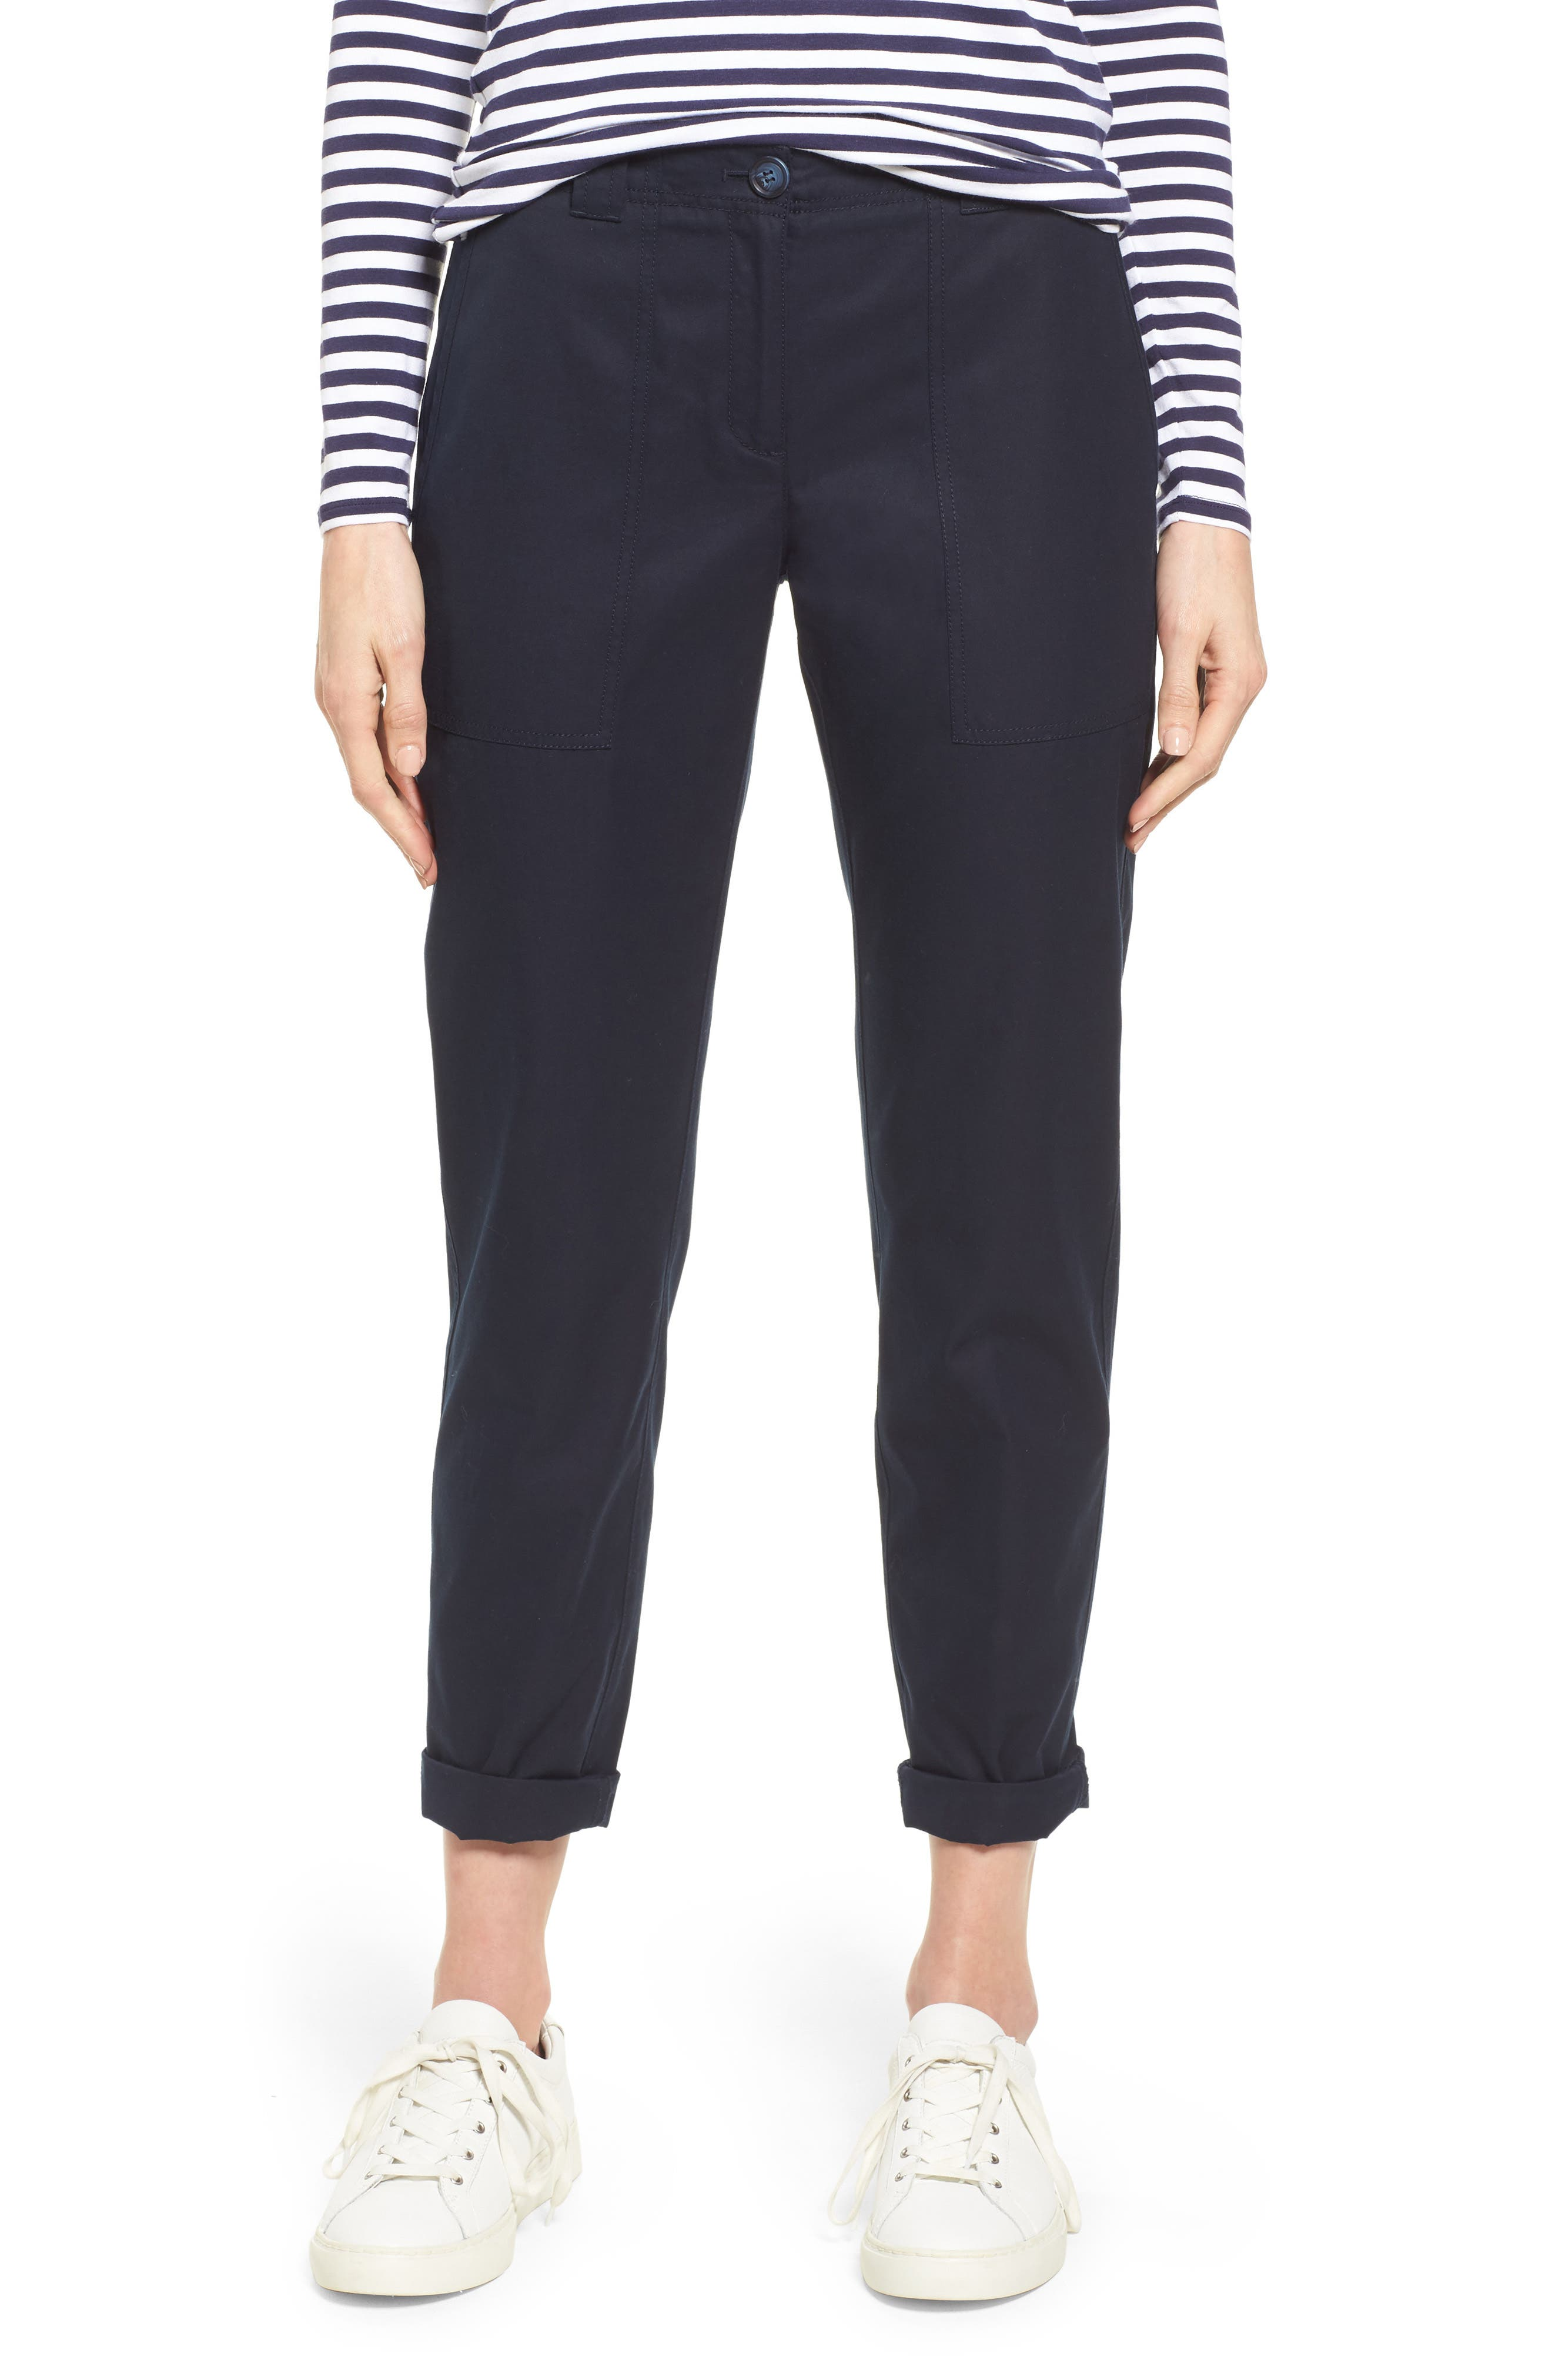 Patch Pocket Ankle Pants,                         Main,                         color, Navy Night